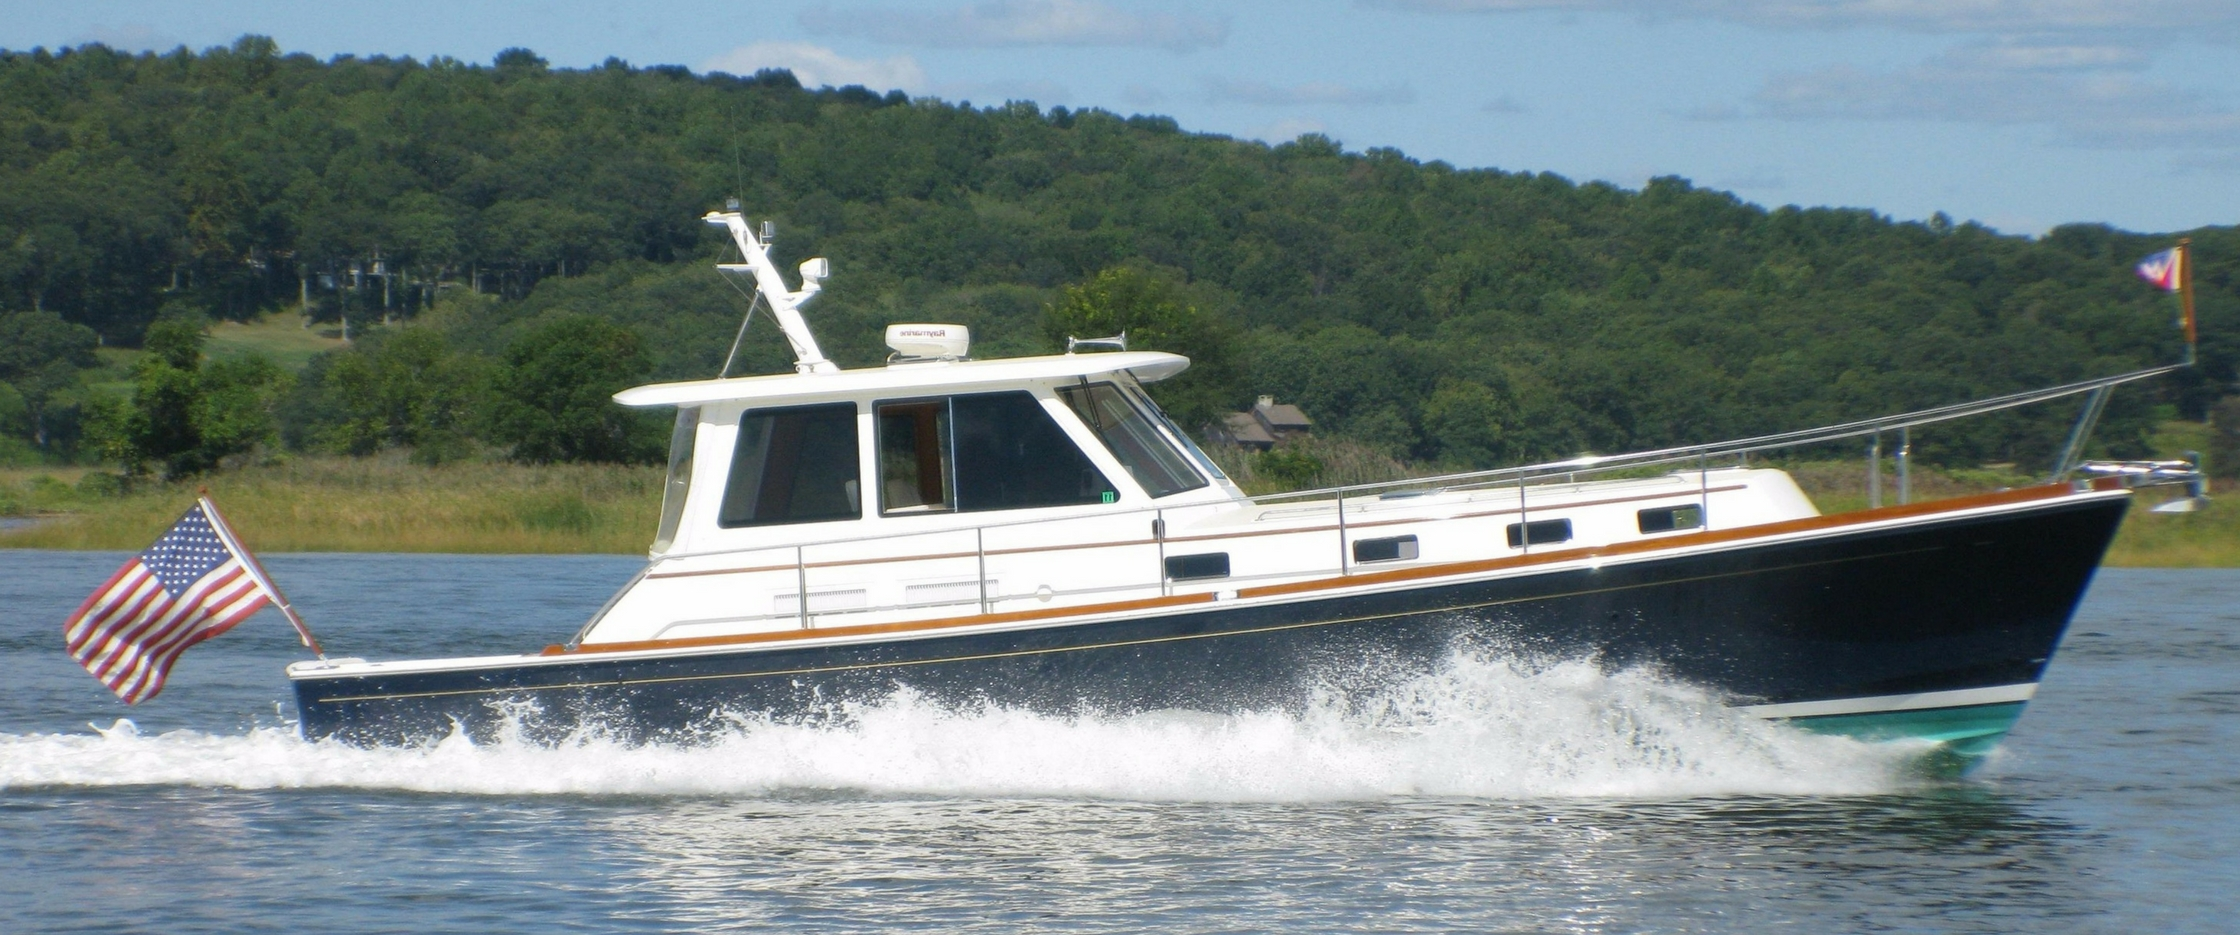 Sell Your Boat With Spicer's Marina Brokerage - Connecticut